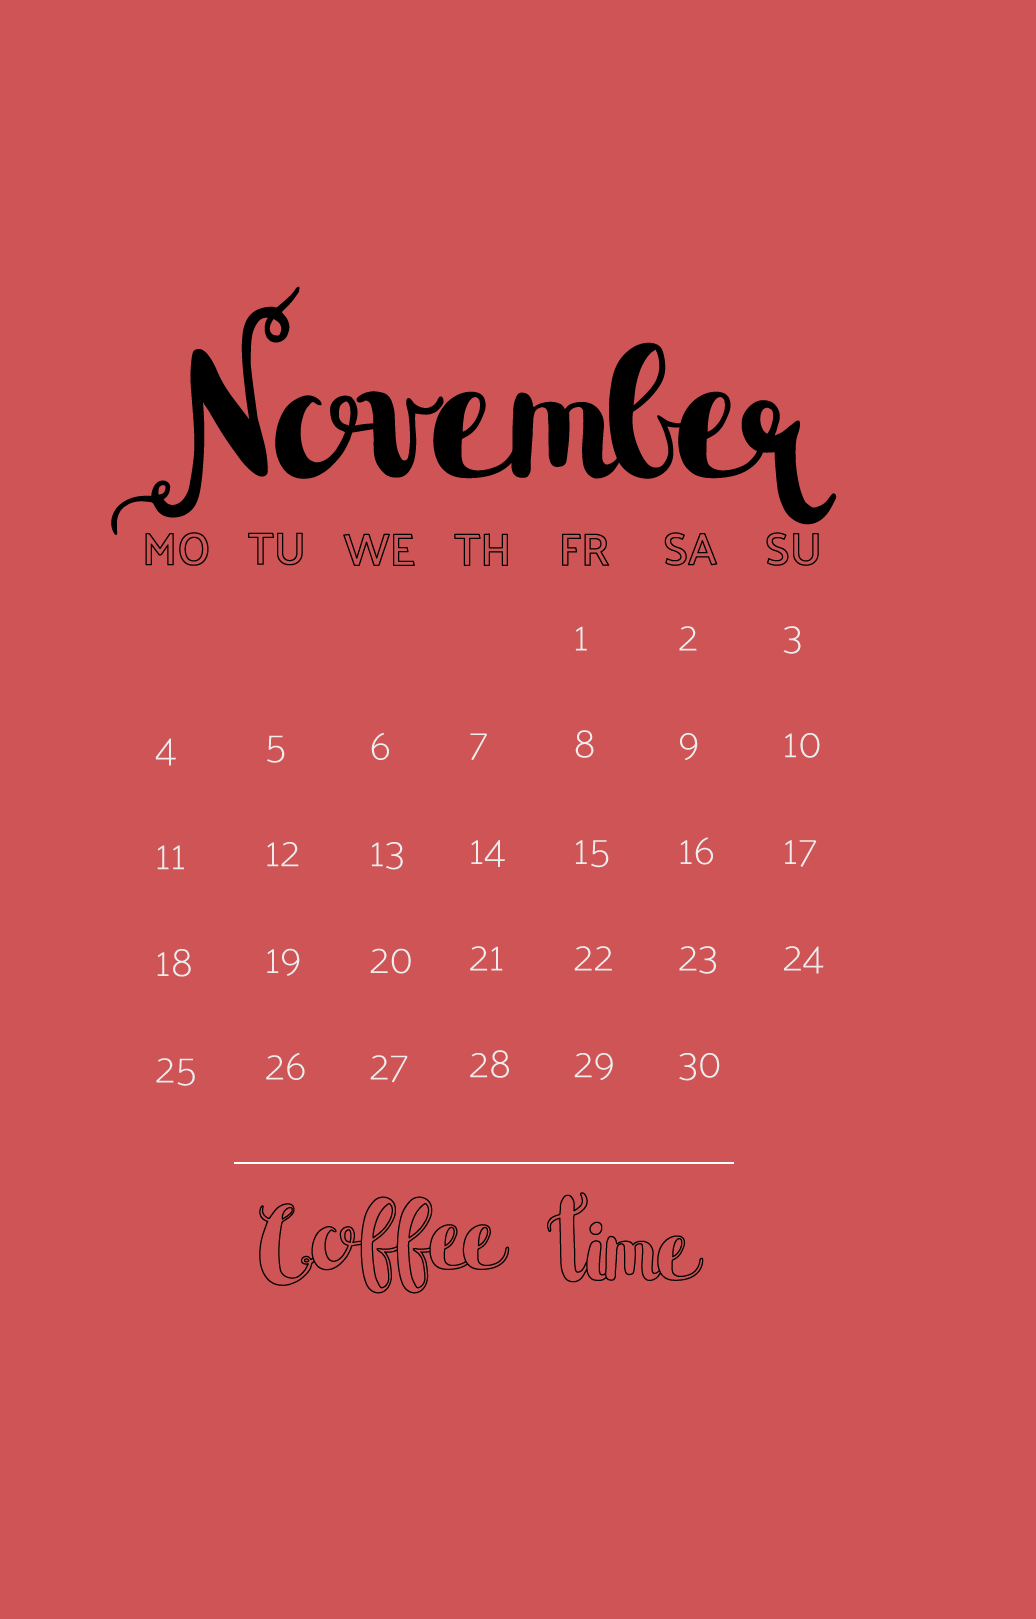 iPhone November 2019 Wallpaper Latest Calendar 1036x1619